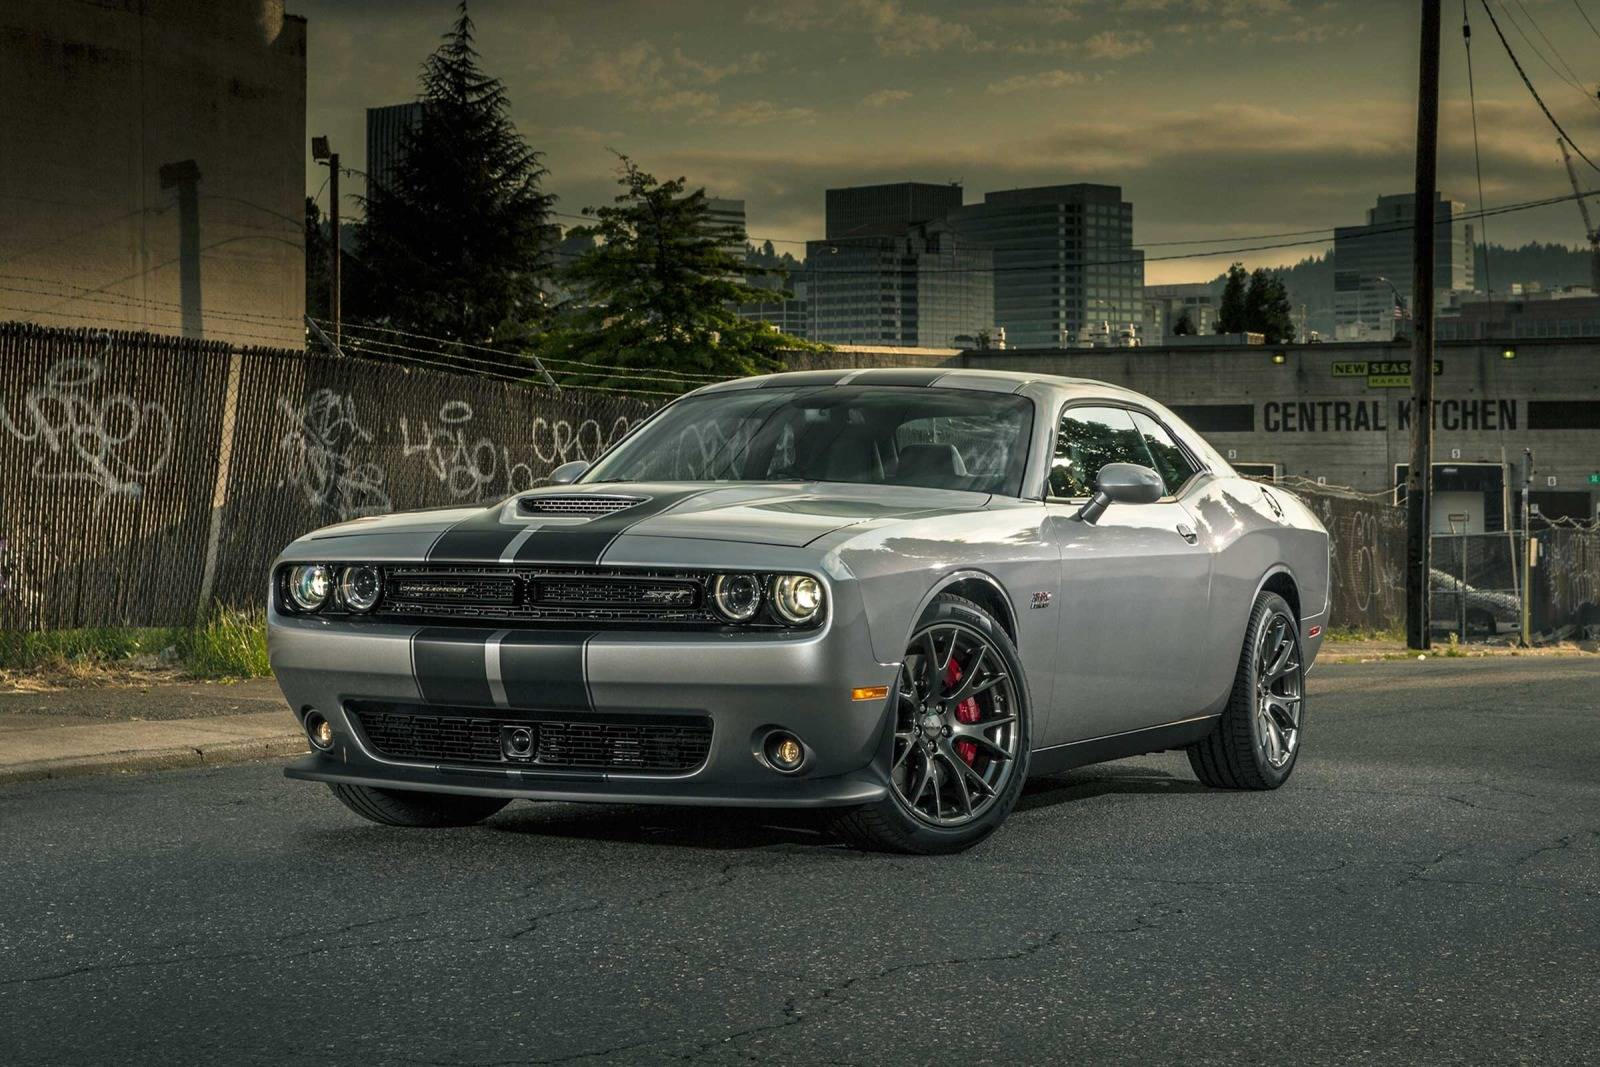 2018 dodge challenger srt 392 review trims specs and price carbuzz. Black Bedroom Furniture Sets. Home Design Ideas